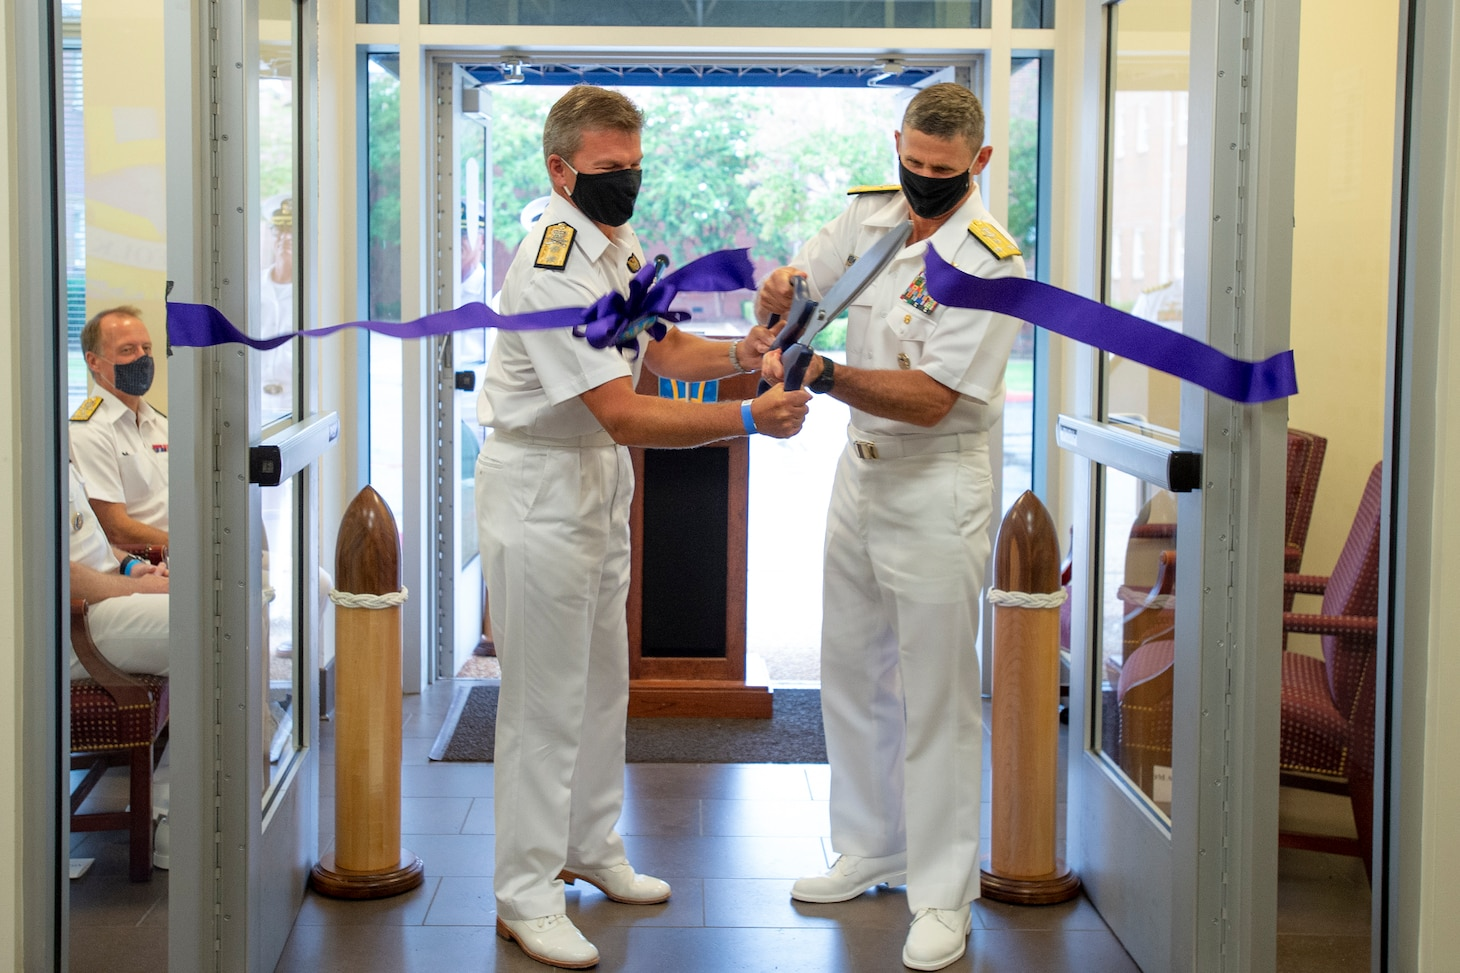 Vice Adm. Andrew Lewis, commander, Joint Force Command Norfolk (JFCNF) and U.S. 2nd Fleet, alongside Rear Adm. Andrew Betton, Deputy Commander, Joint Force Command Norfolk, cut the ribbon to commemorate JFCNF's achievement of initial operational capability (IOC), Sept. 17.